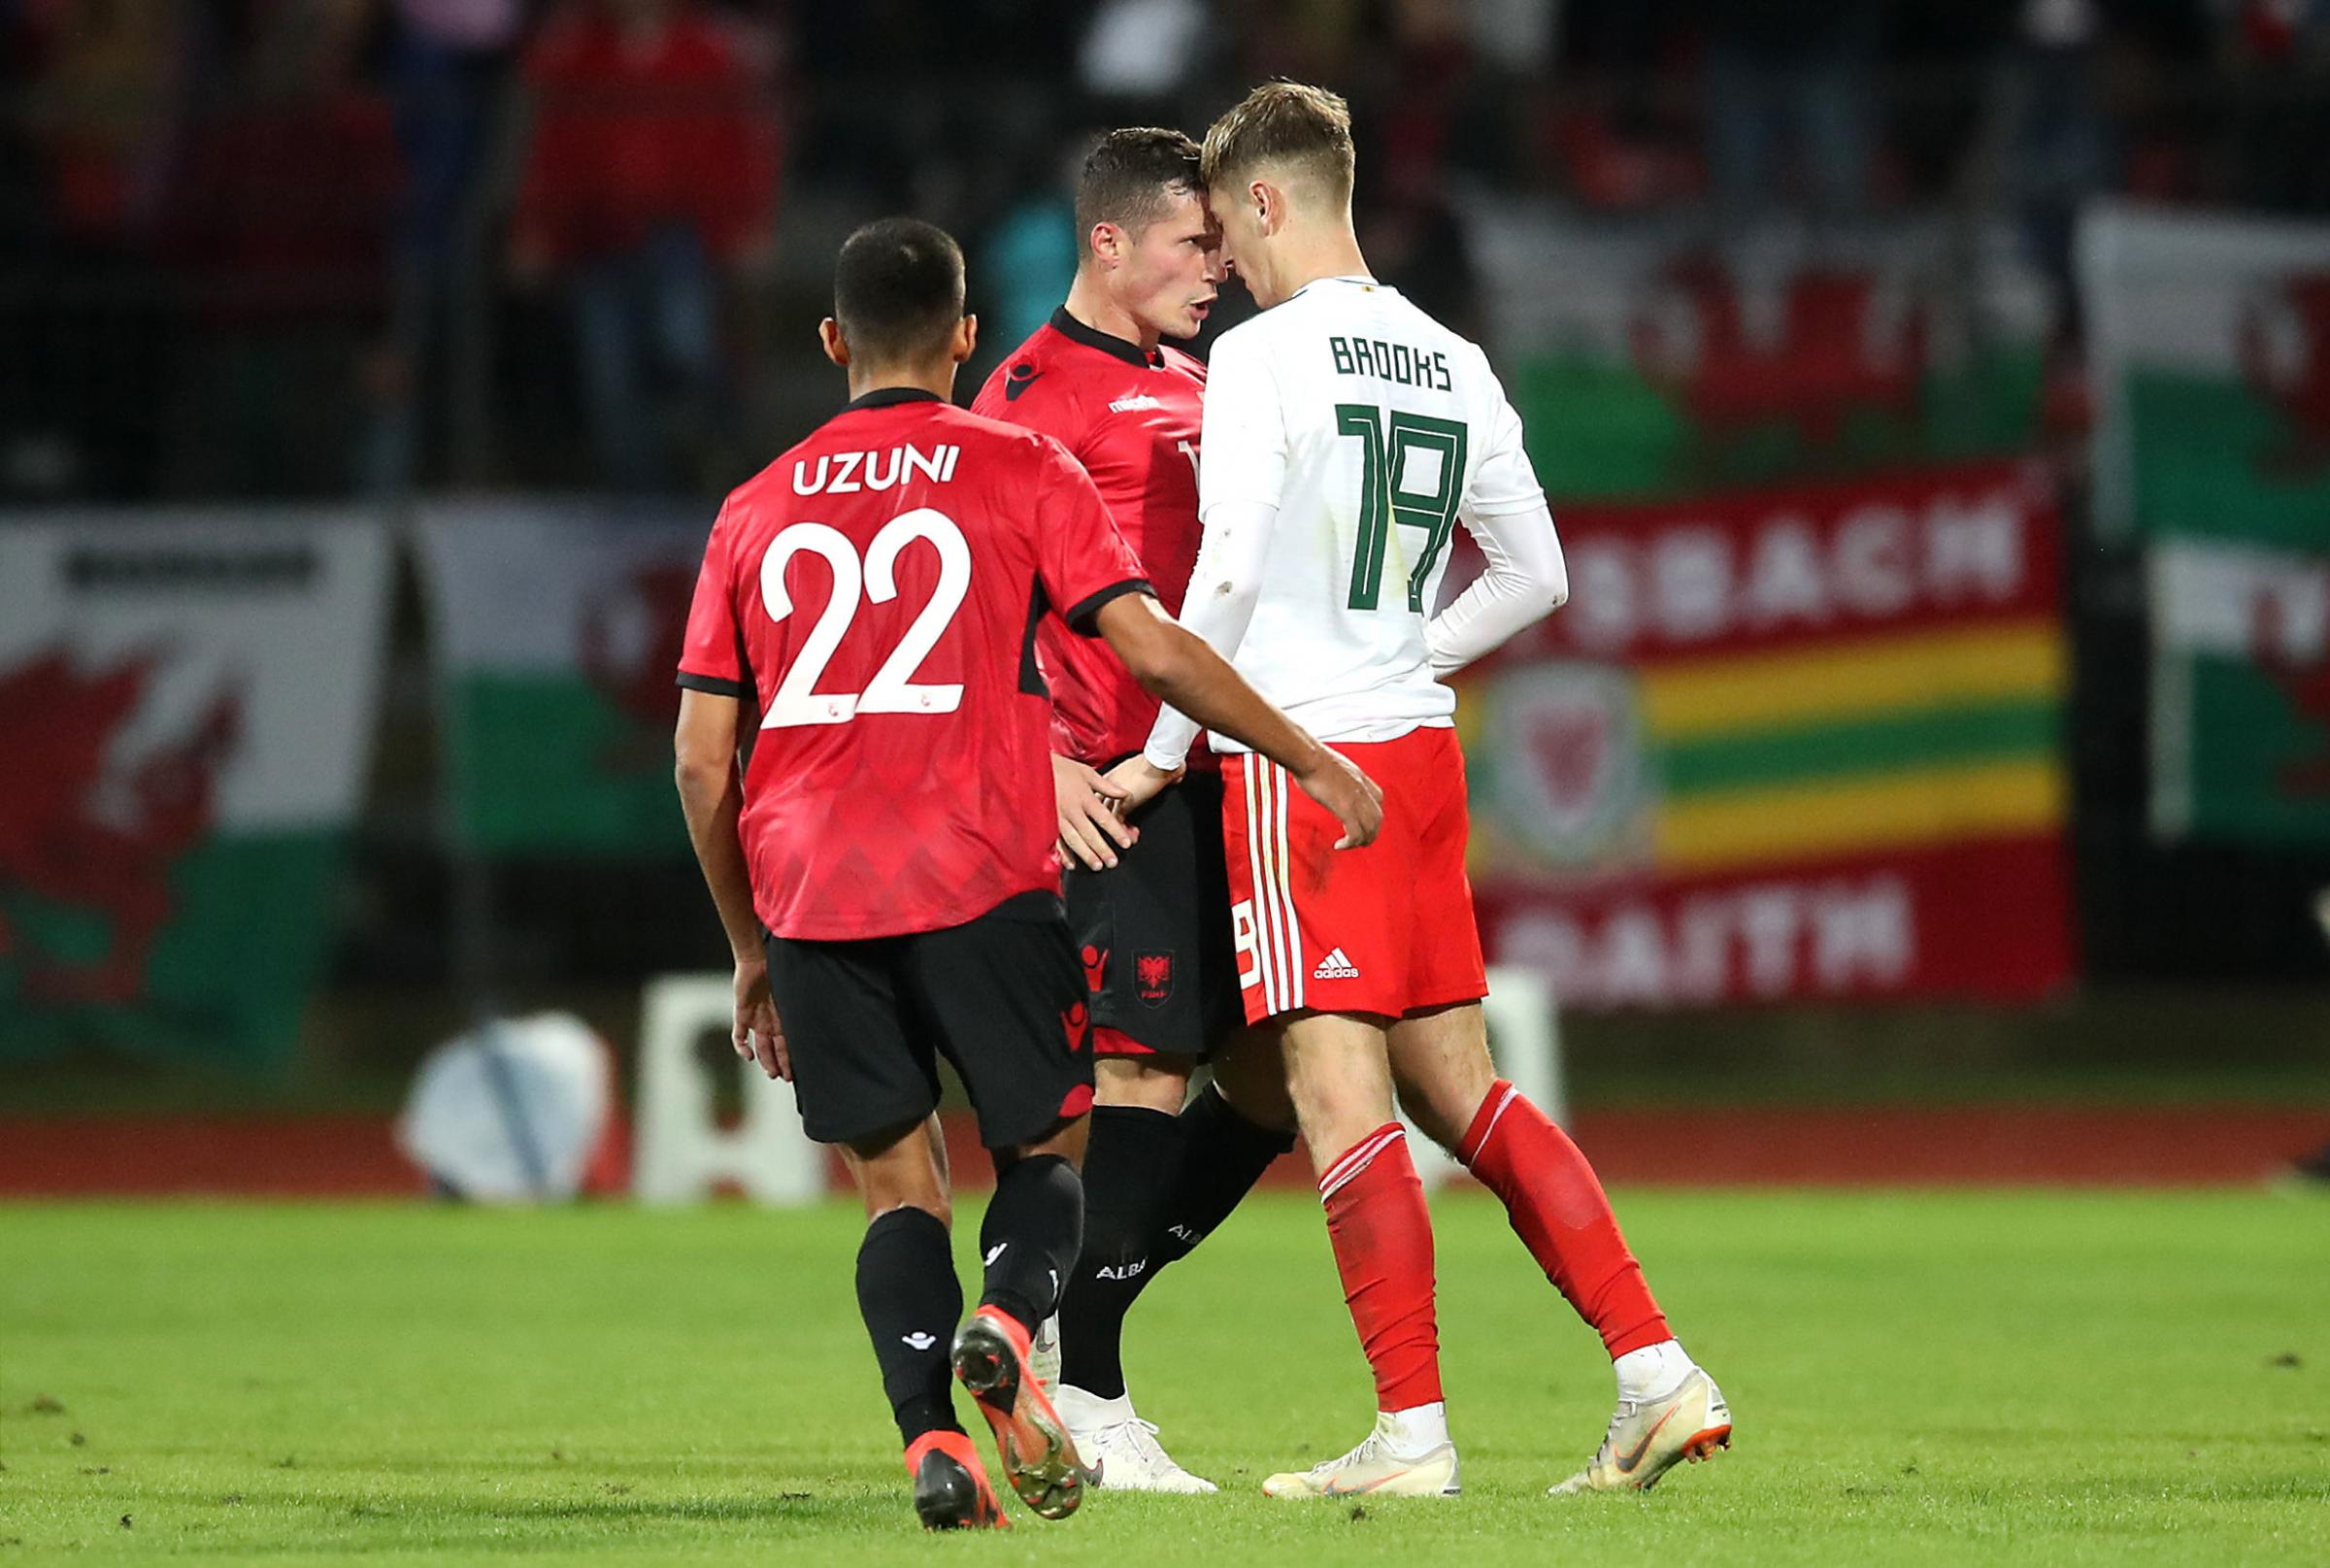 FLASHPOINT: Wales' David Brooks clashes with Albania's Taulant Xhaka